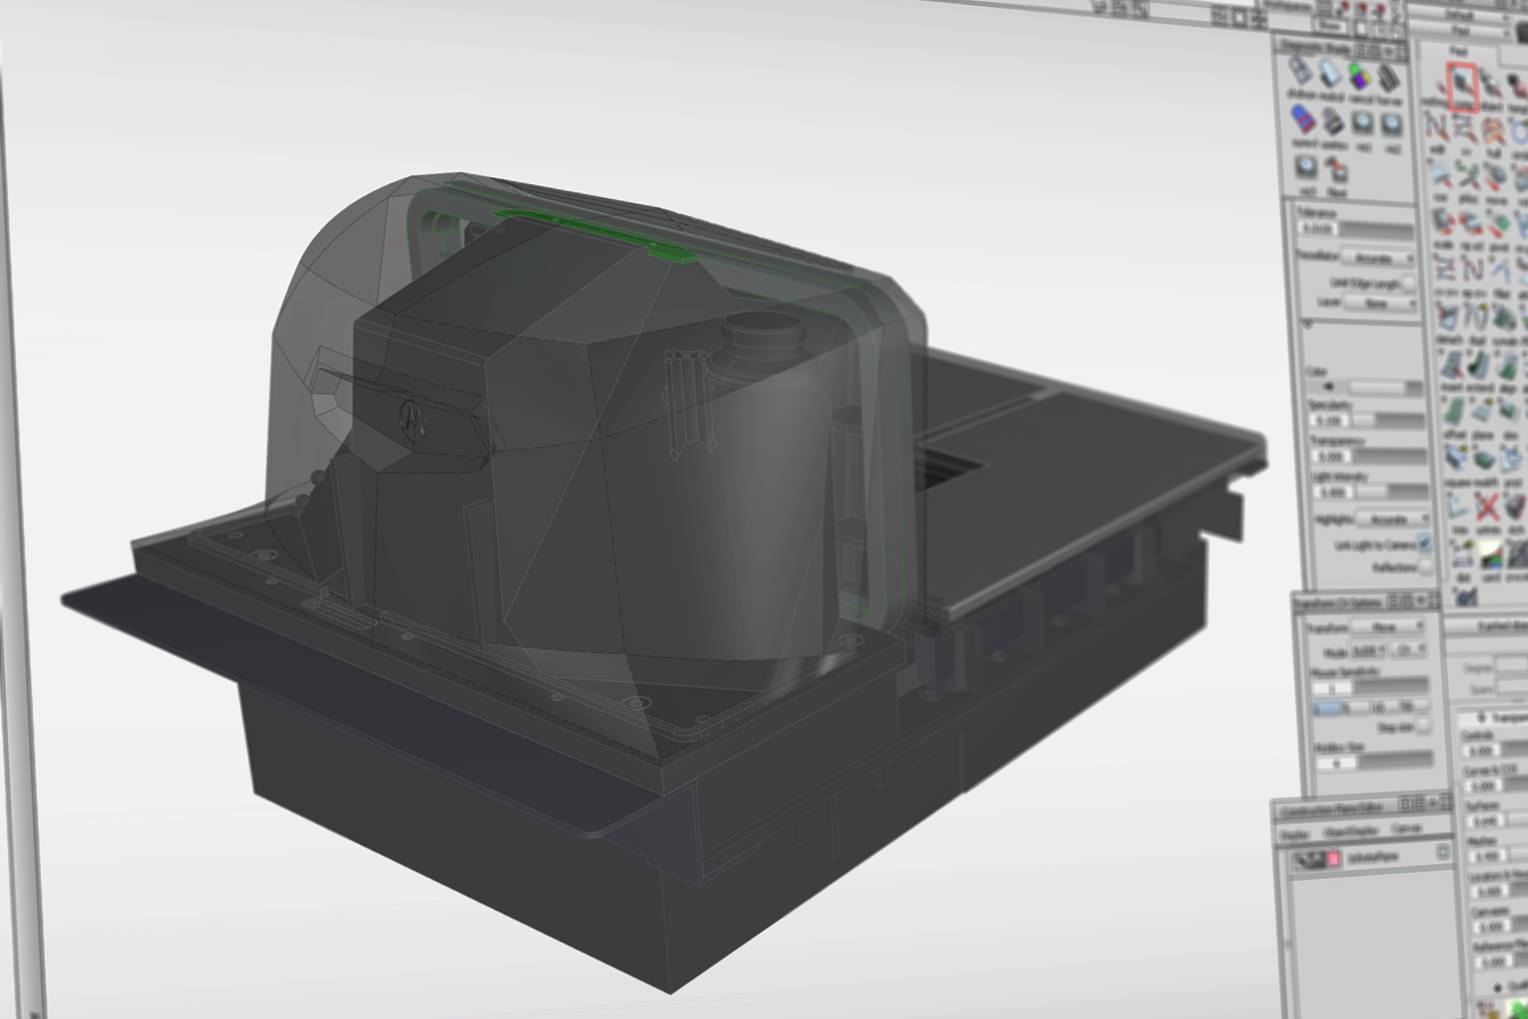 Rear view of the MP6000 with the internals visible in the CAD file